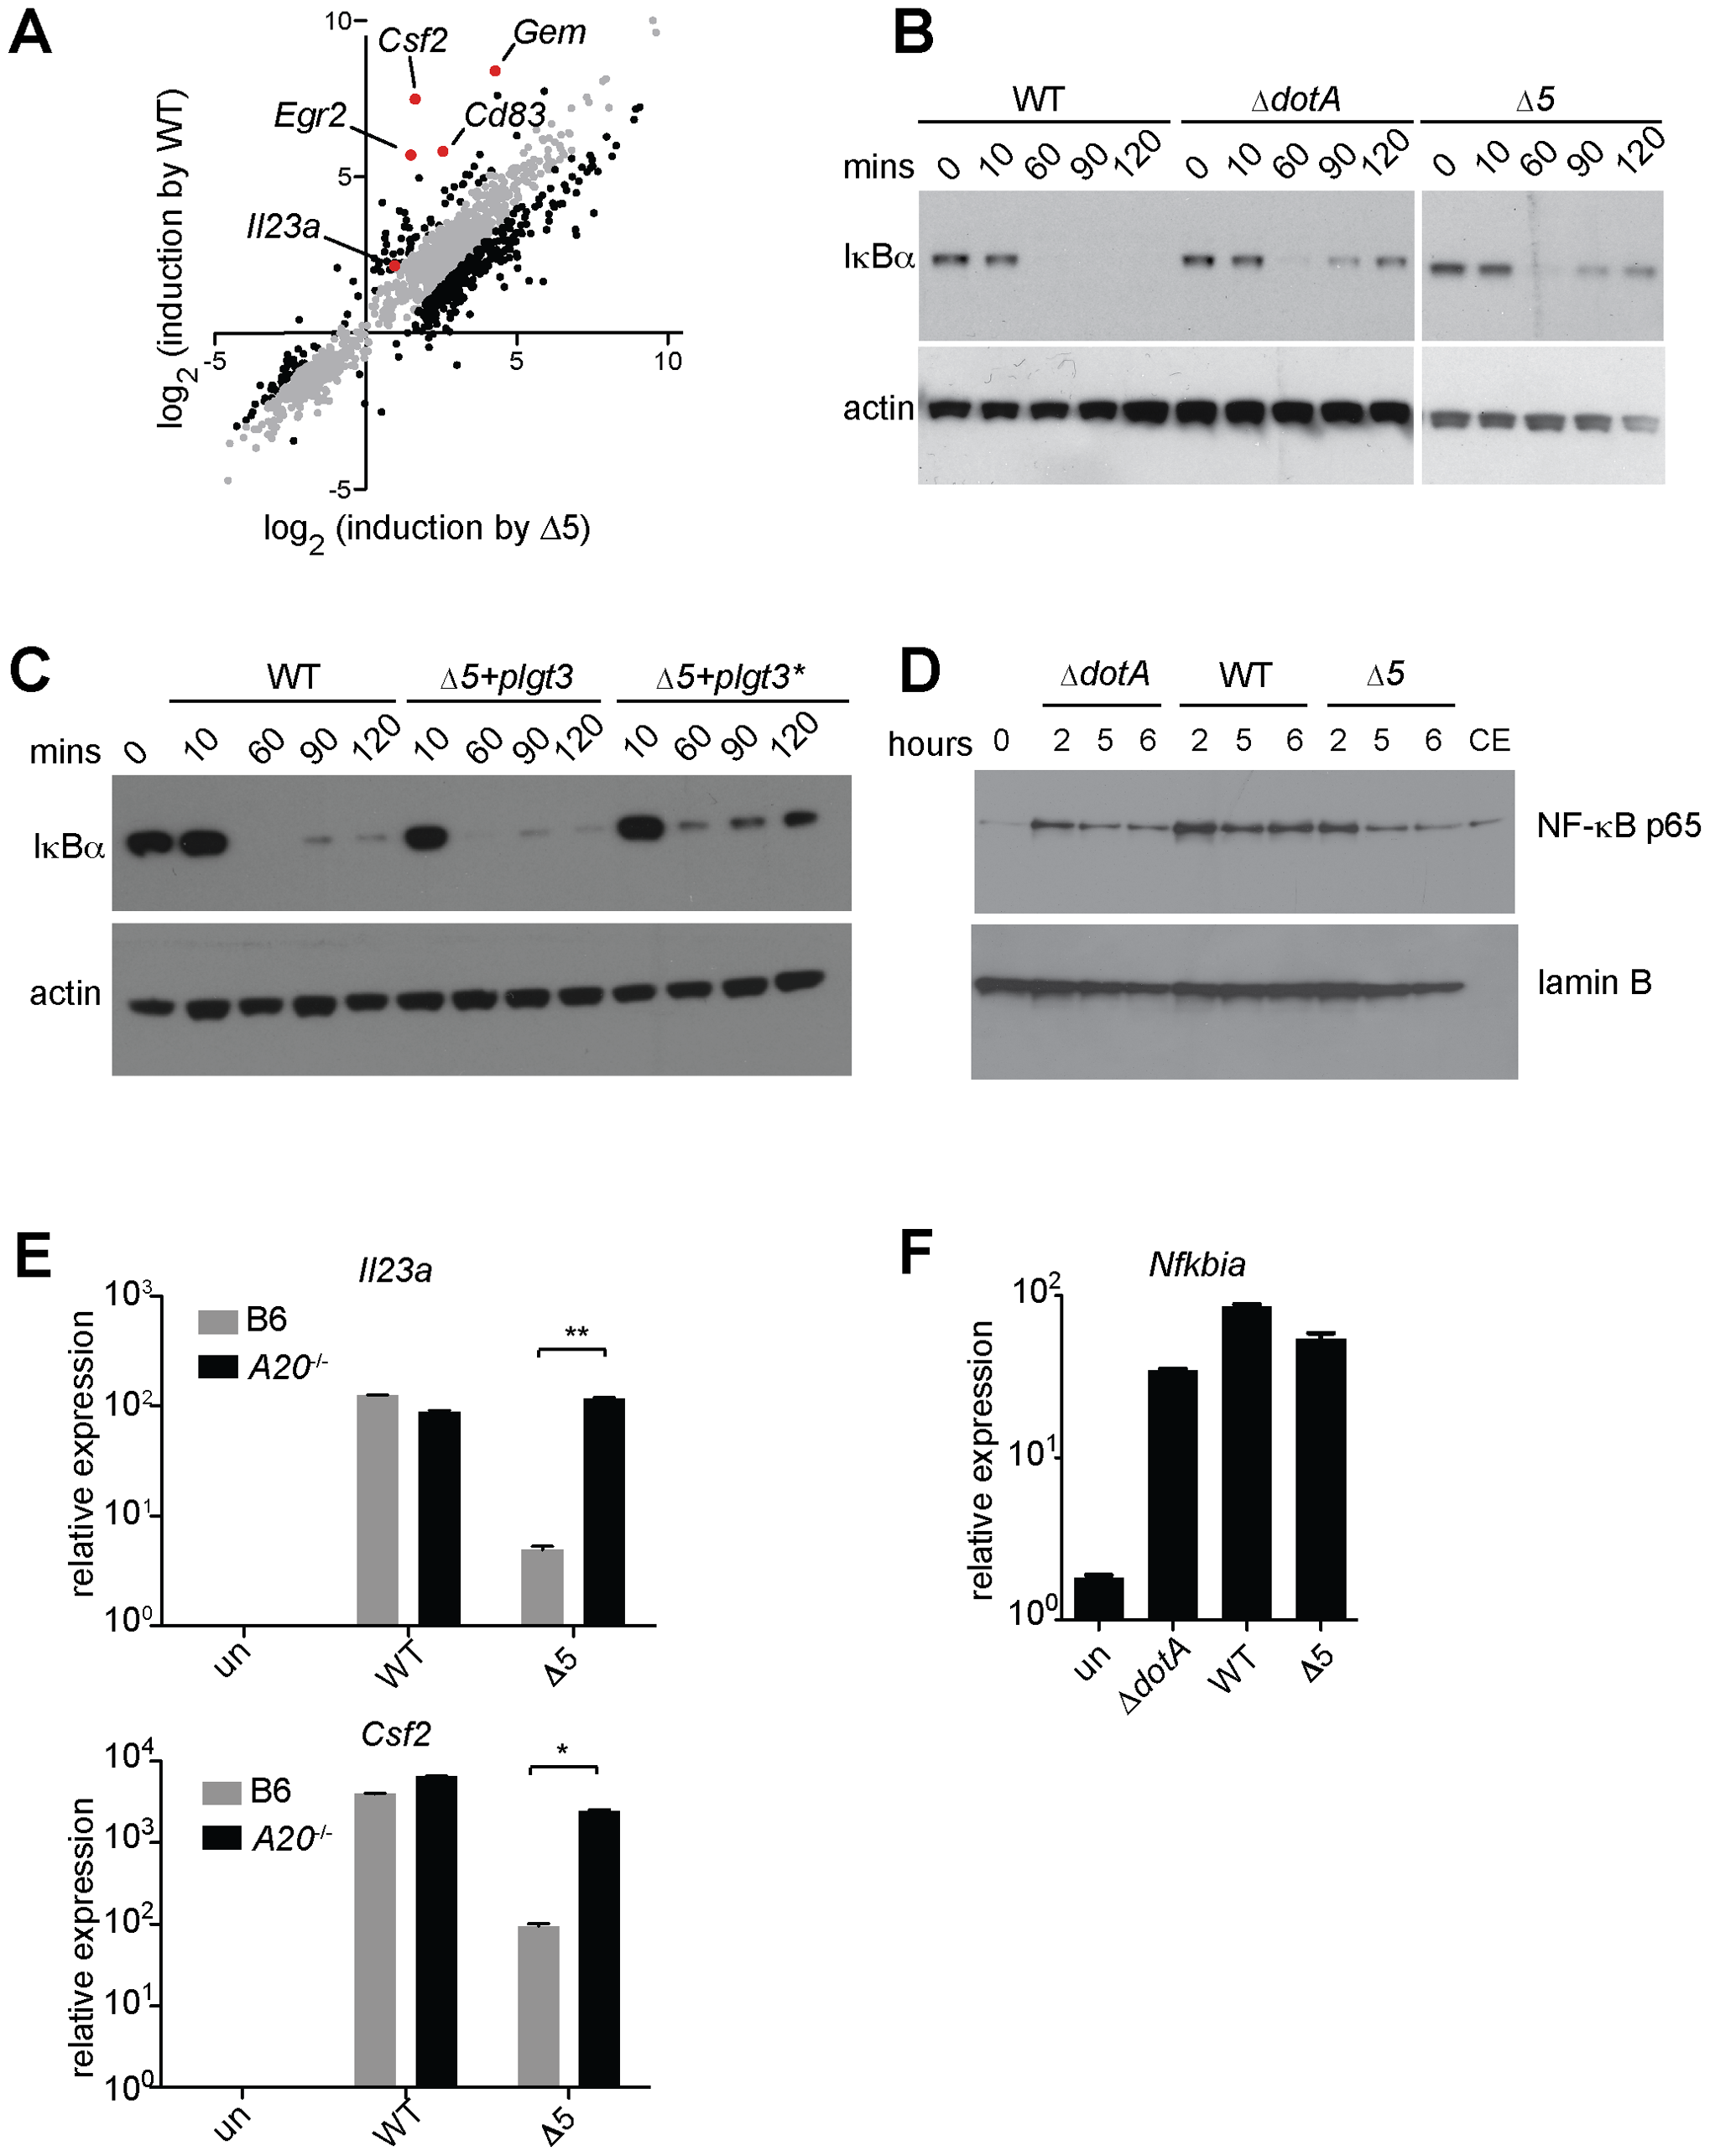 Expression of the 5 <i>L. pneumophila</i> effectors and induction of 'effector-triggered' genes correlates with sustained loss of inhibitors of the NF-κB transcription factor.